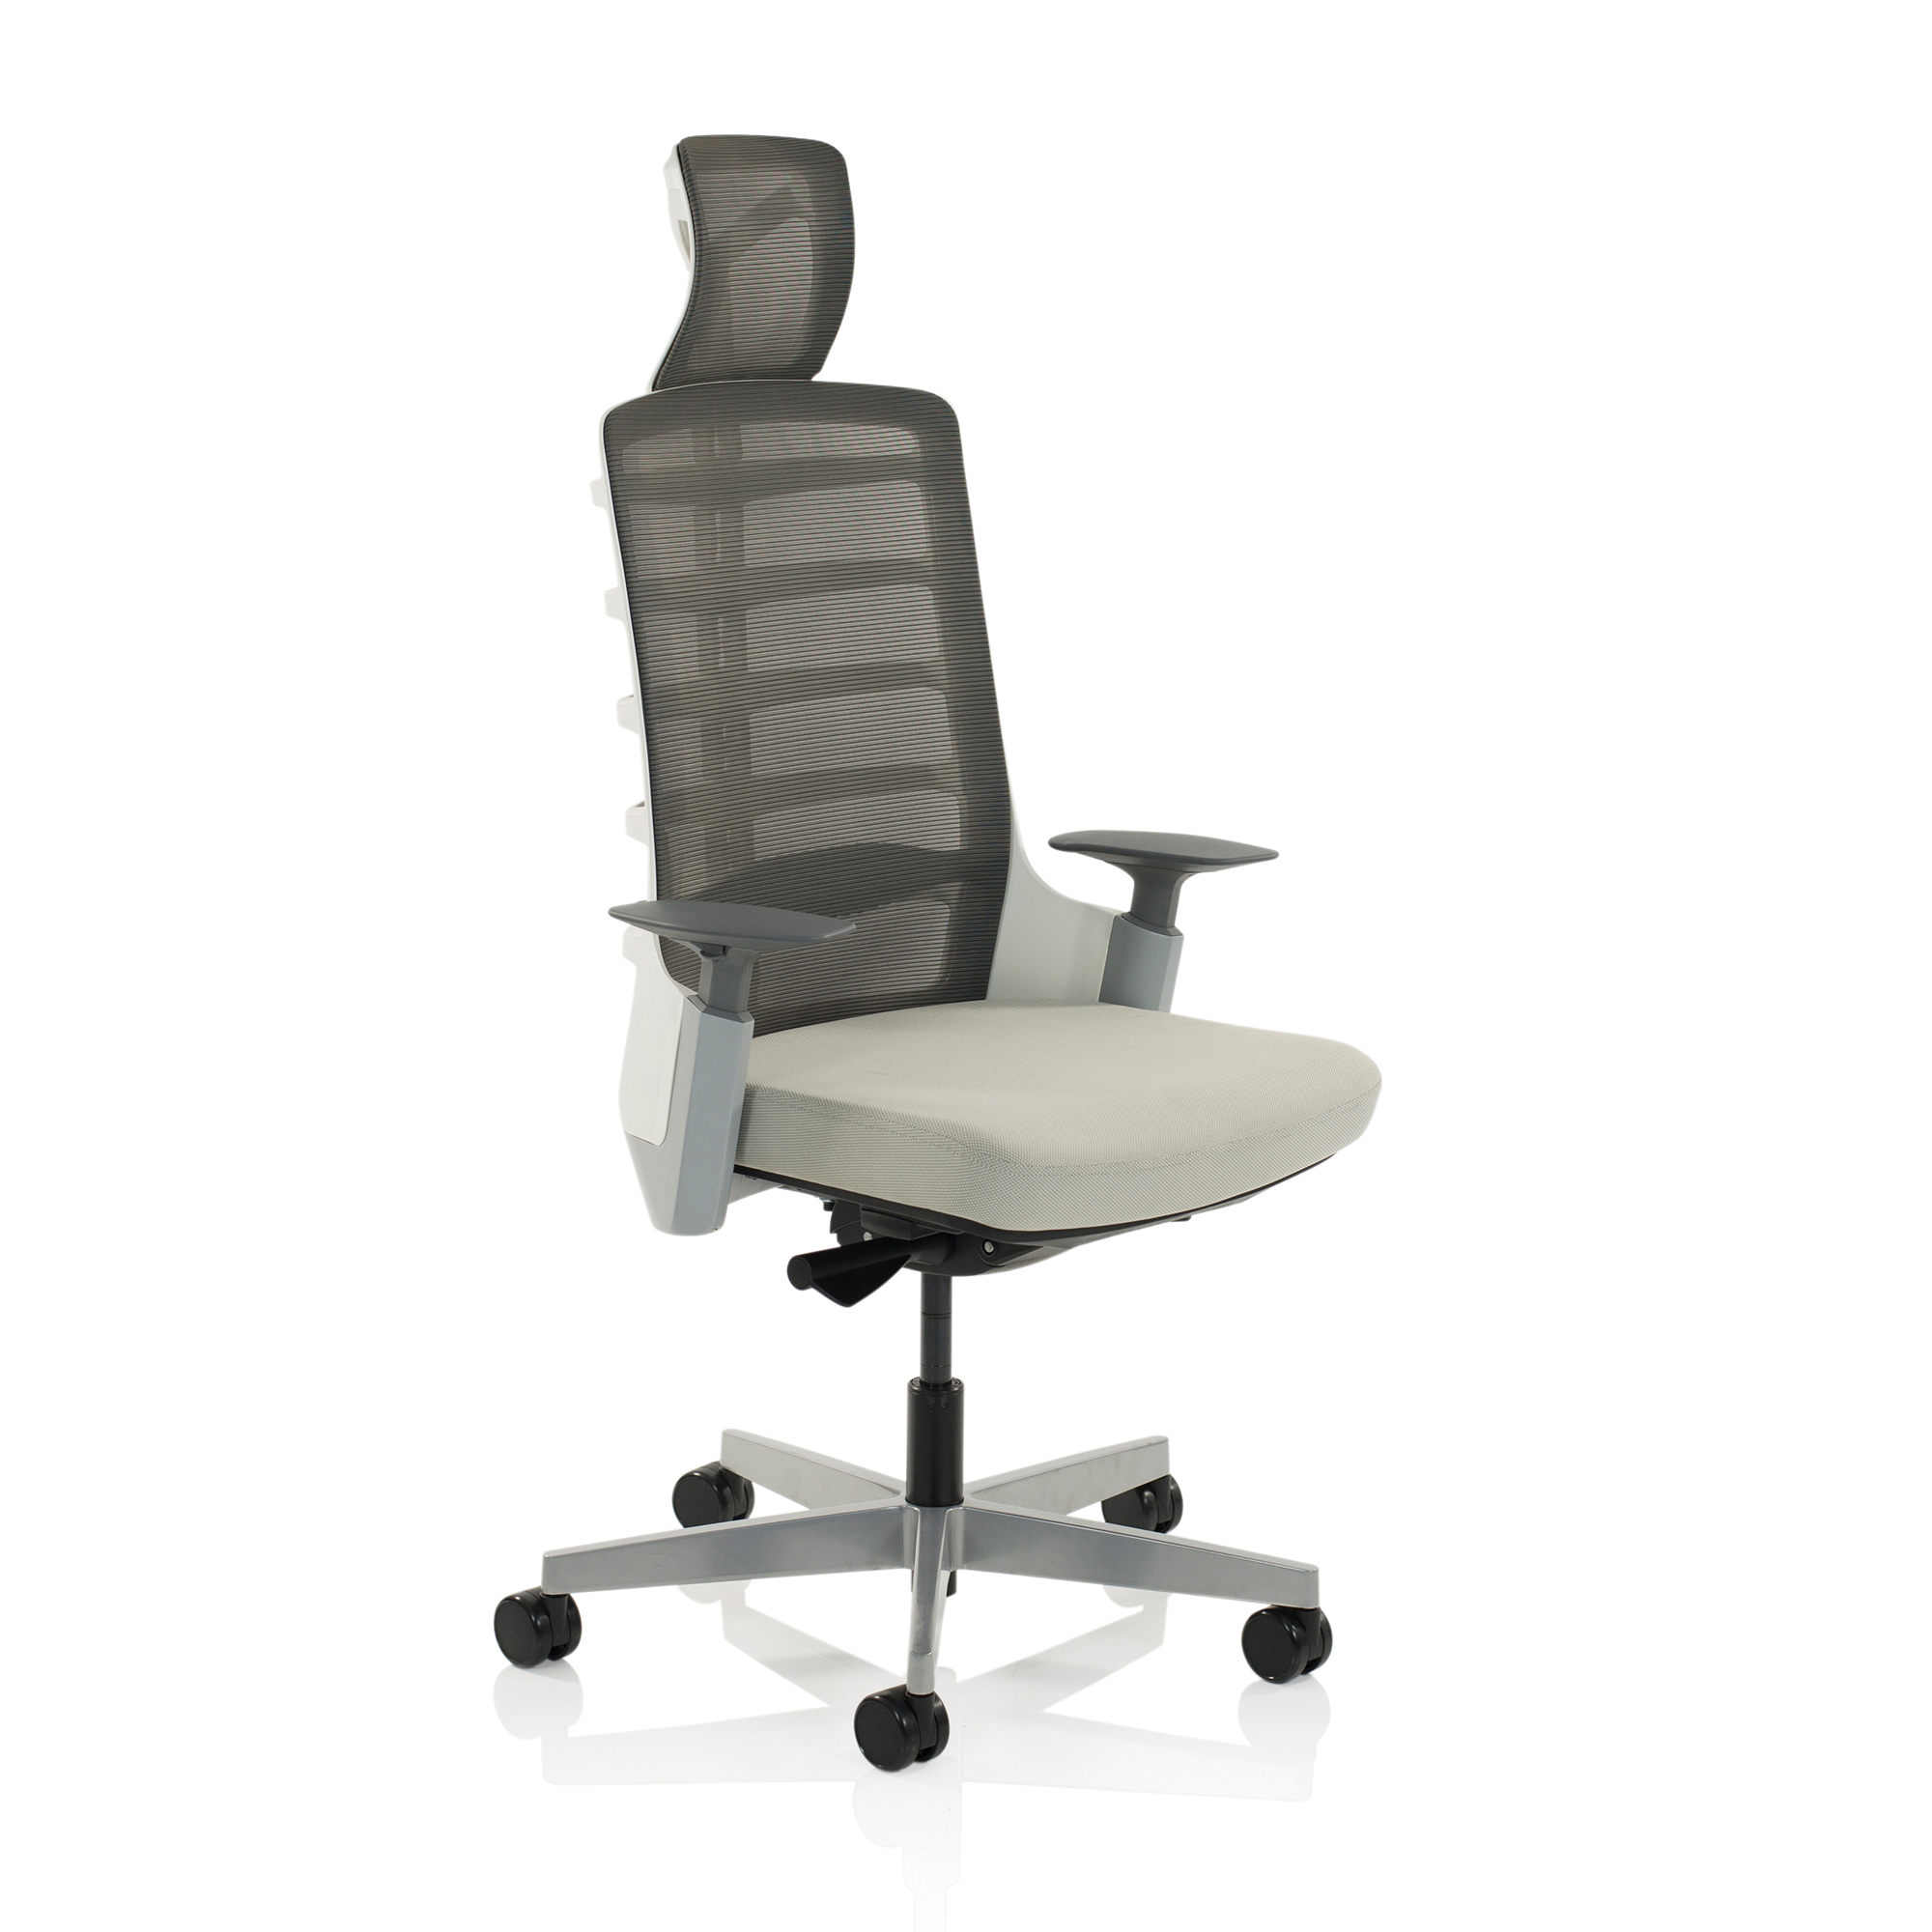 Task seating Adroit Exo Posture Chair Mesh Back With Fabric Seat Charcoal Grey Light Grey Ref EX000194